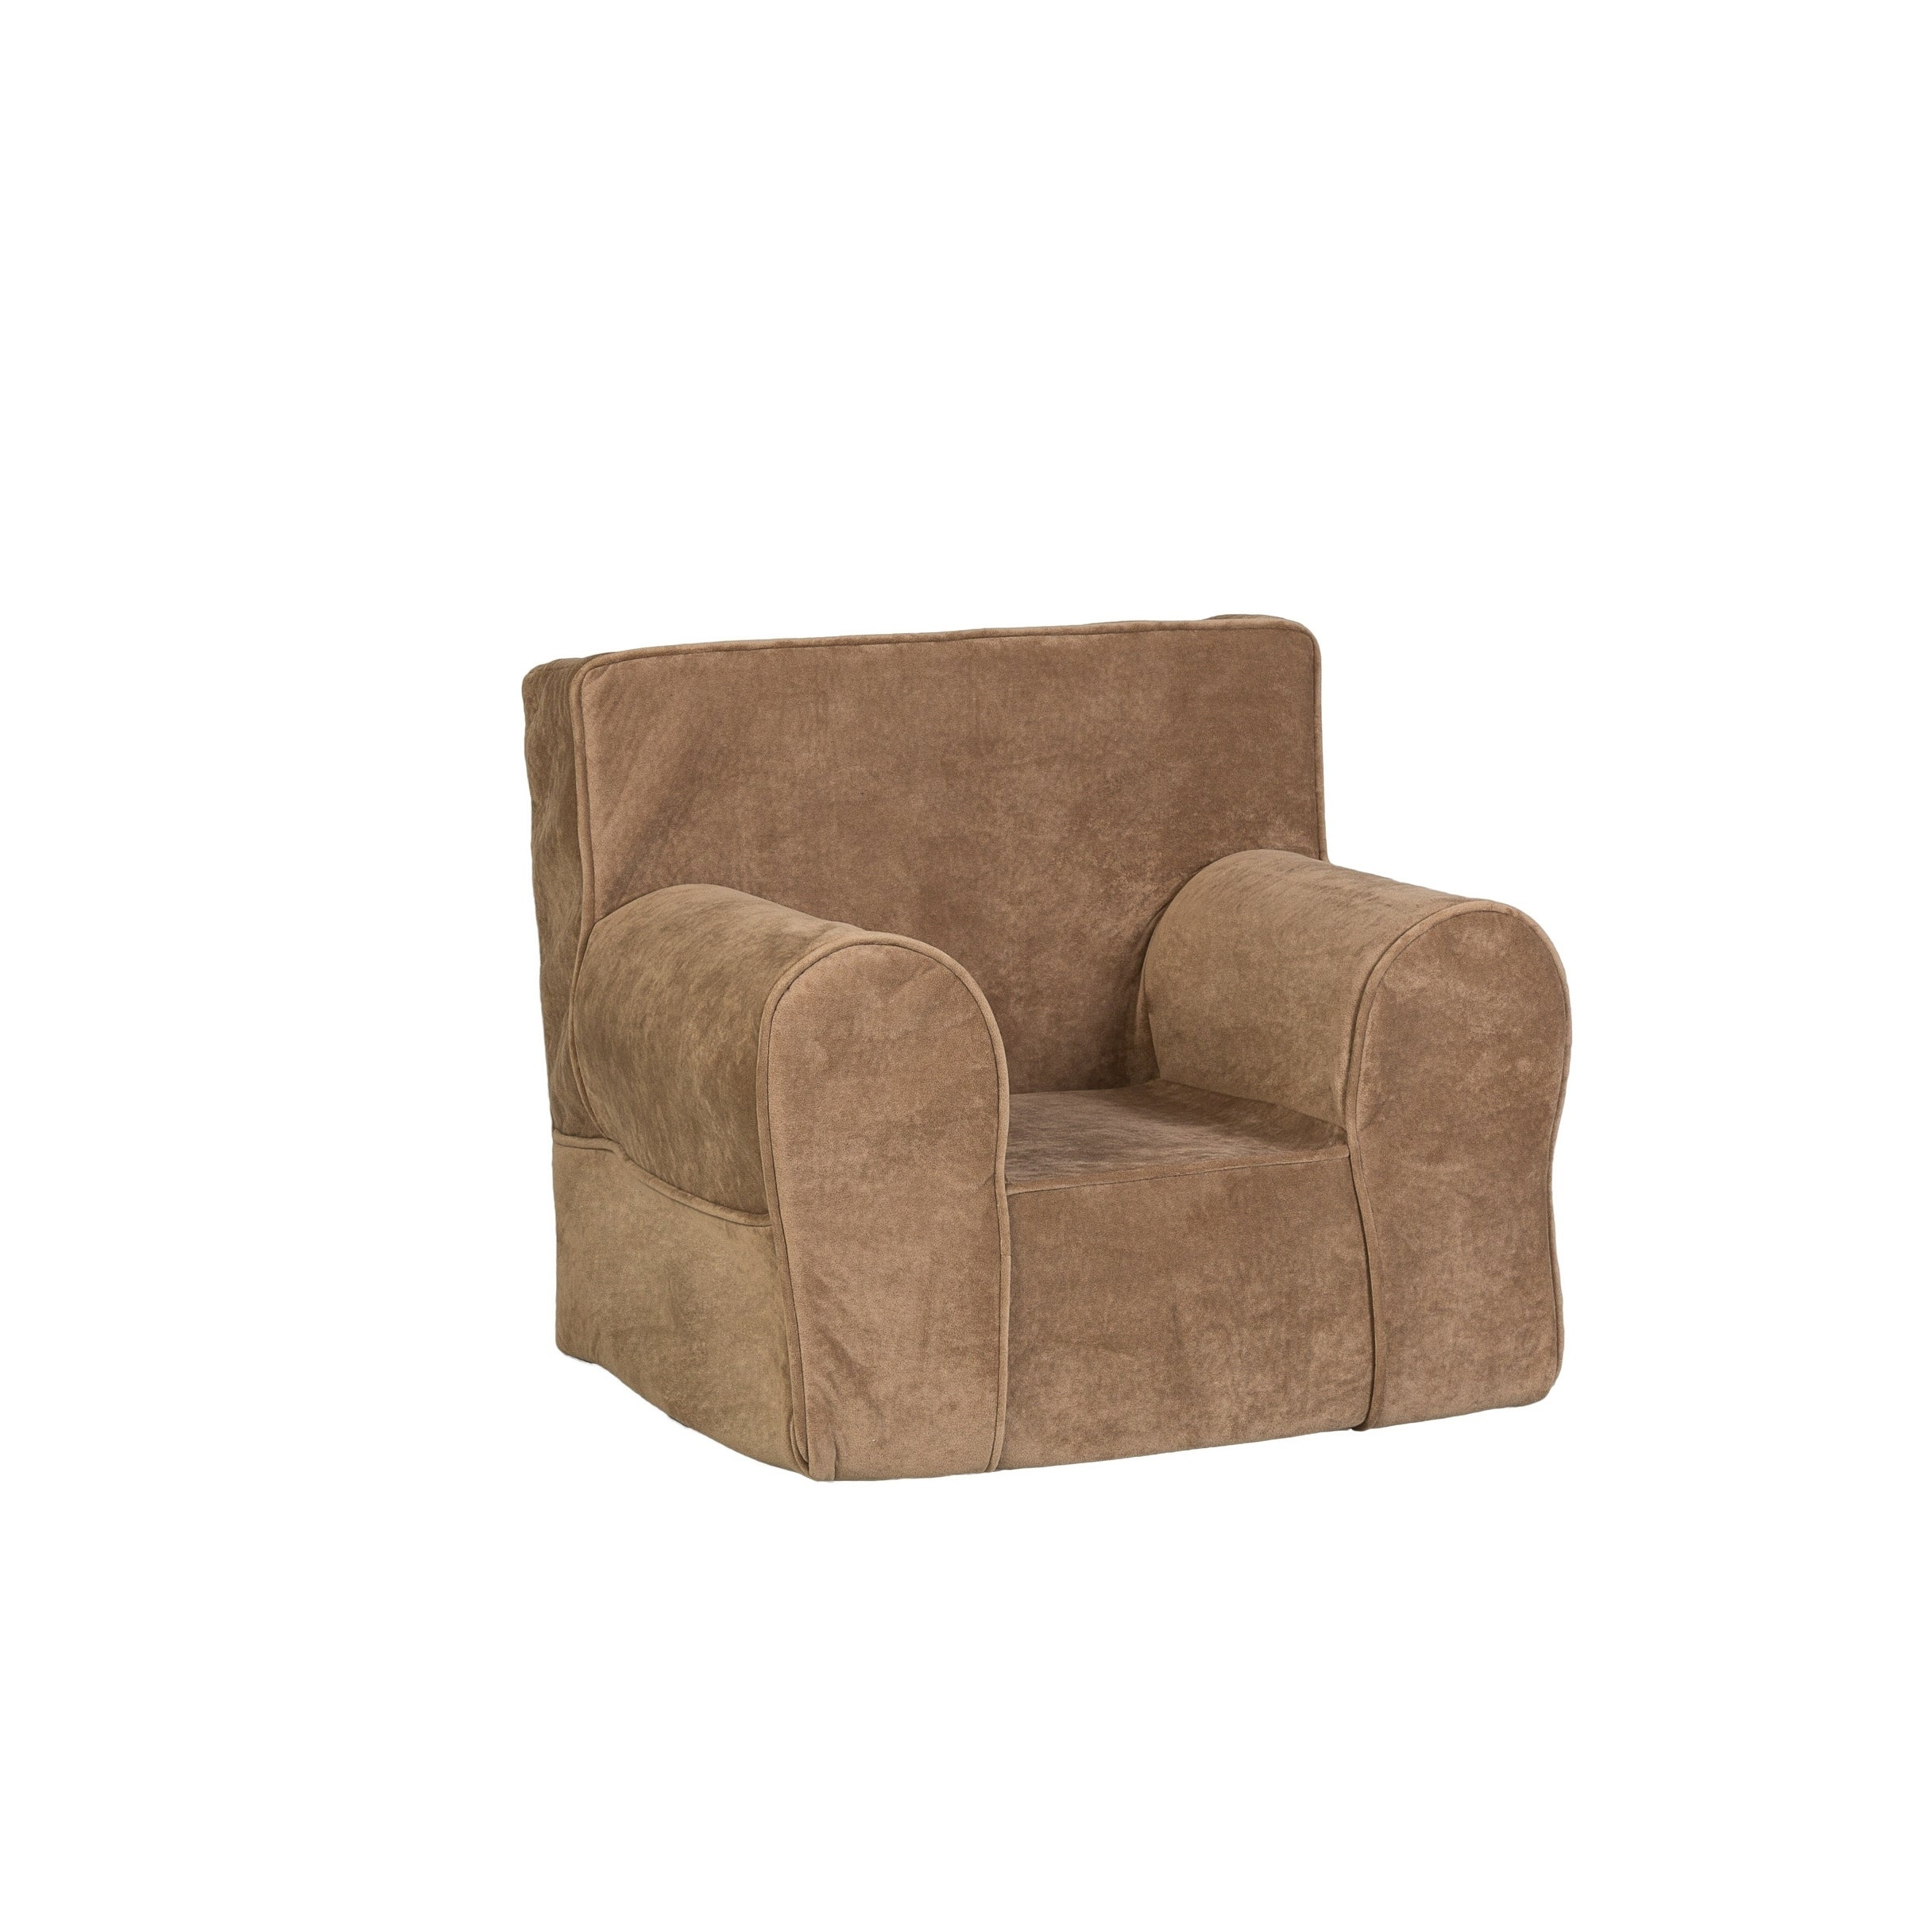 Astonishing Leffler Home All Mine Personalized Kids Chair In Donna Coffee Creativecarmelina Interior Chair Design Creativecarmelinacom